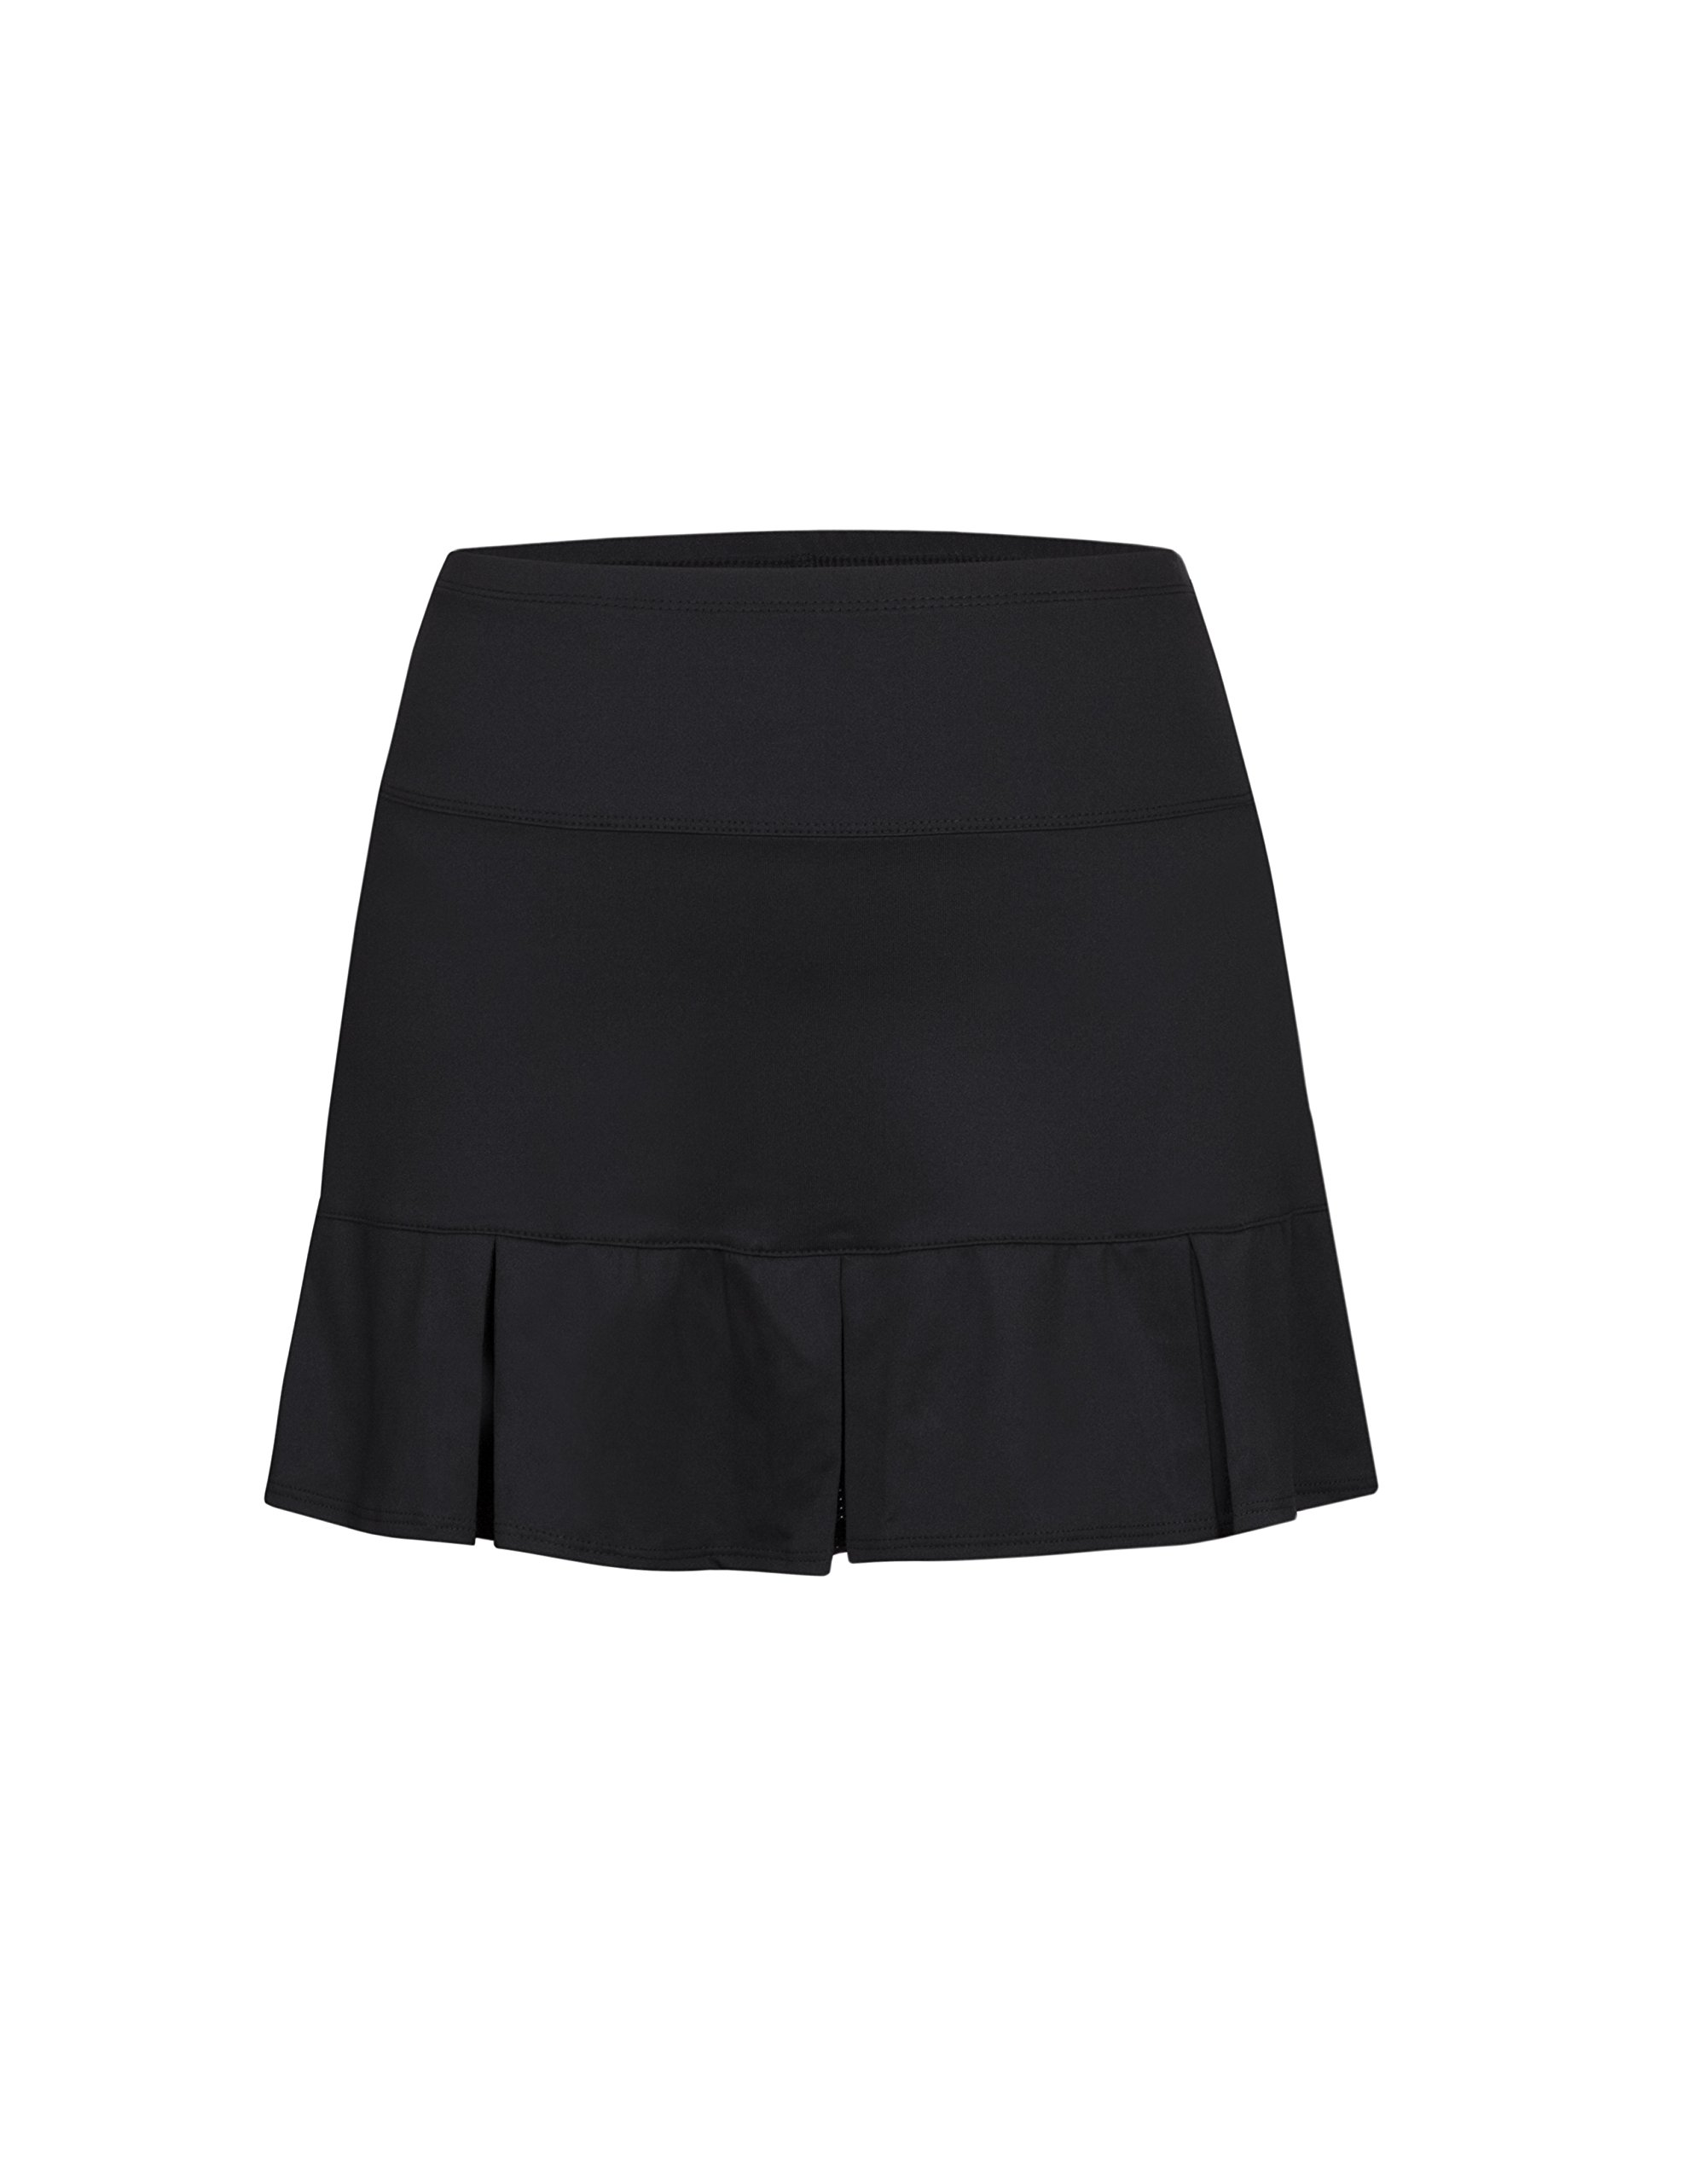 Tail Activewear Women's Doral 14.5 Length Skort XX-Large Black by Tail Activewear (Image #3)